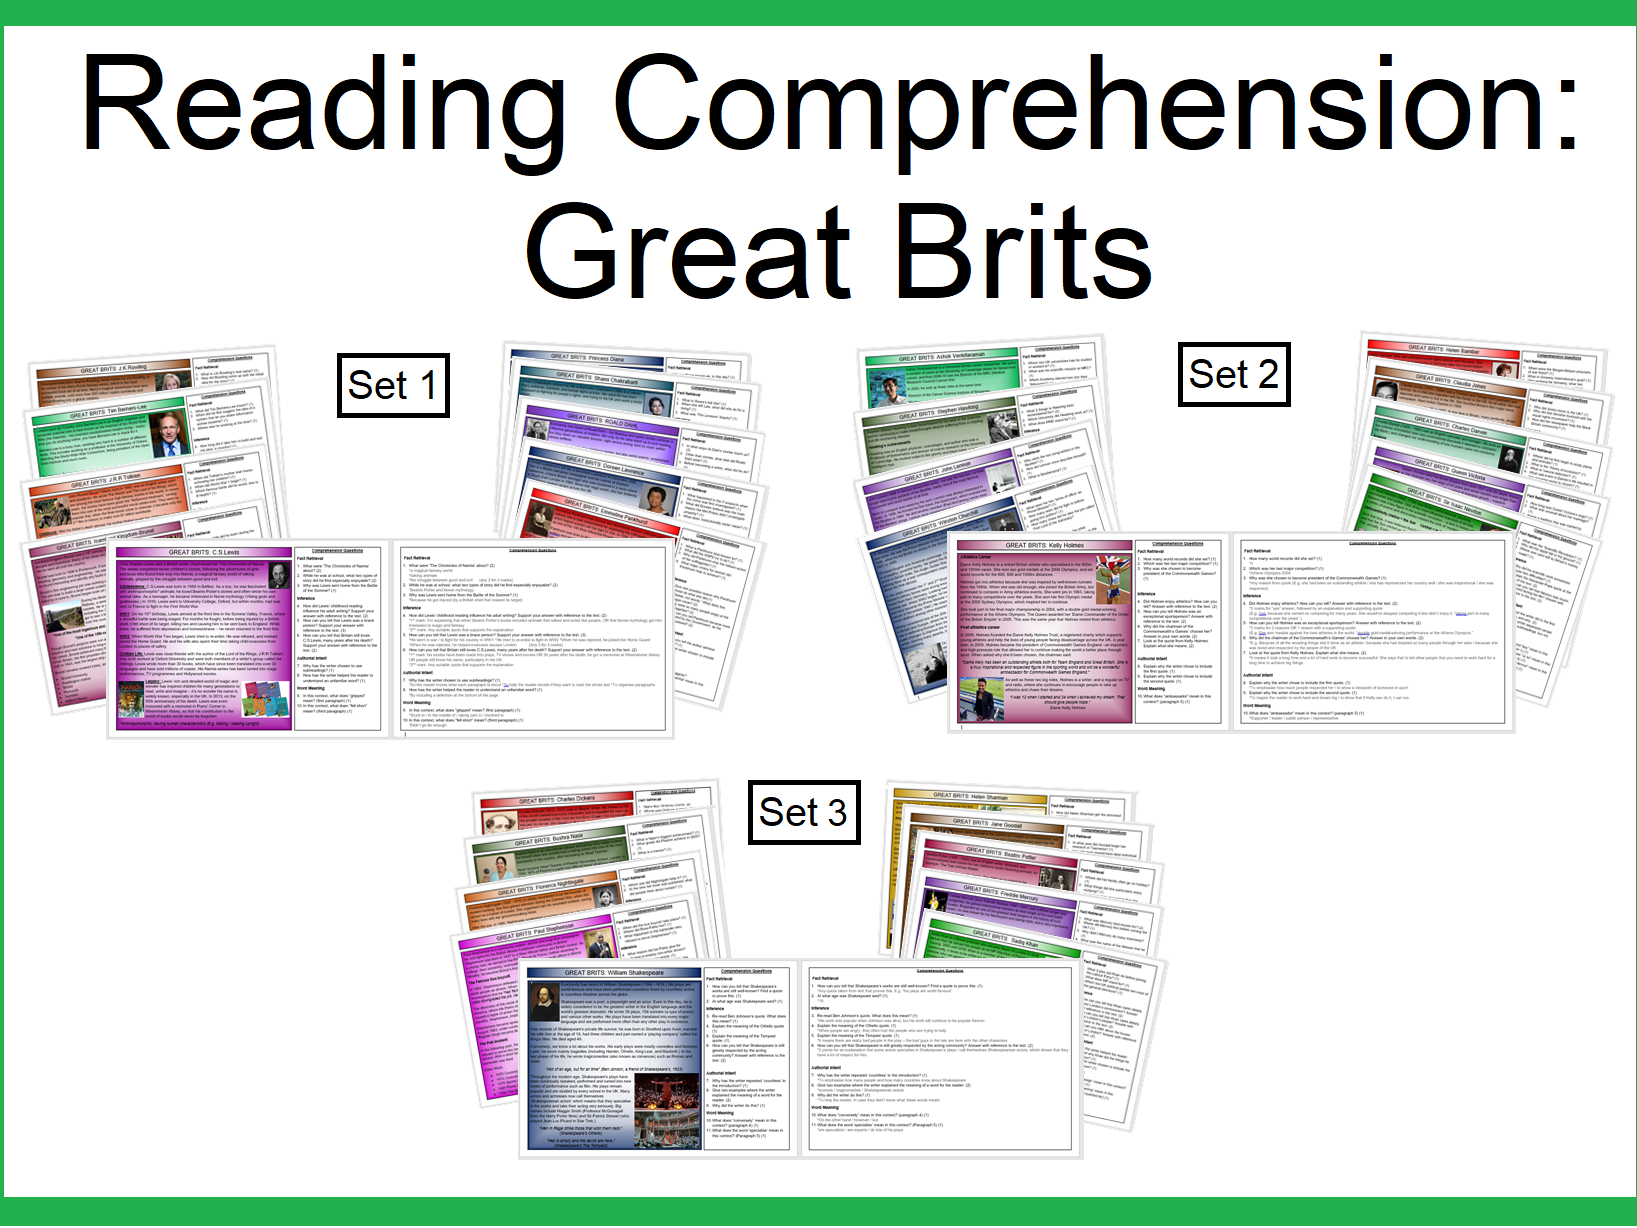 Reading Comprehension:Great Brits (all 3 sets)